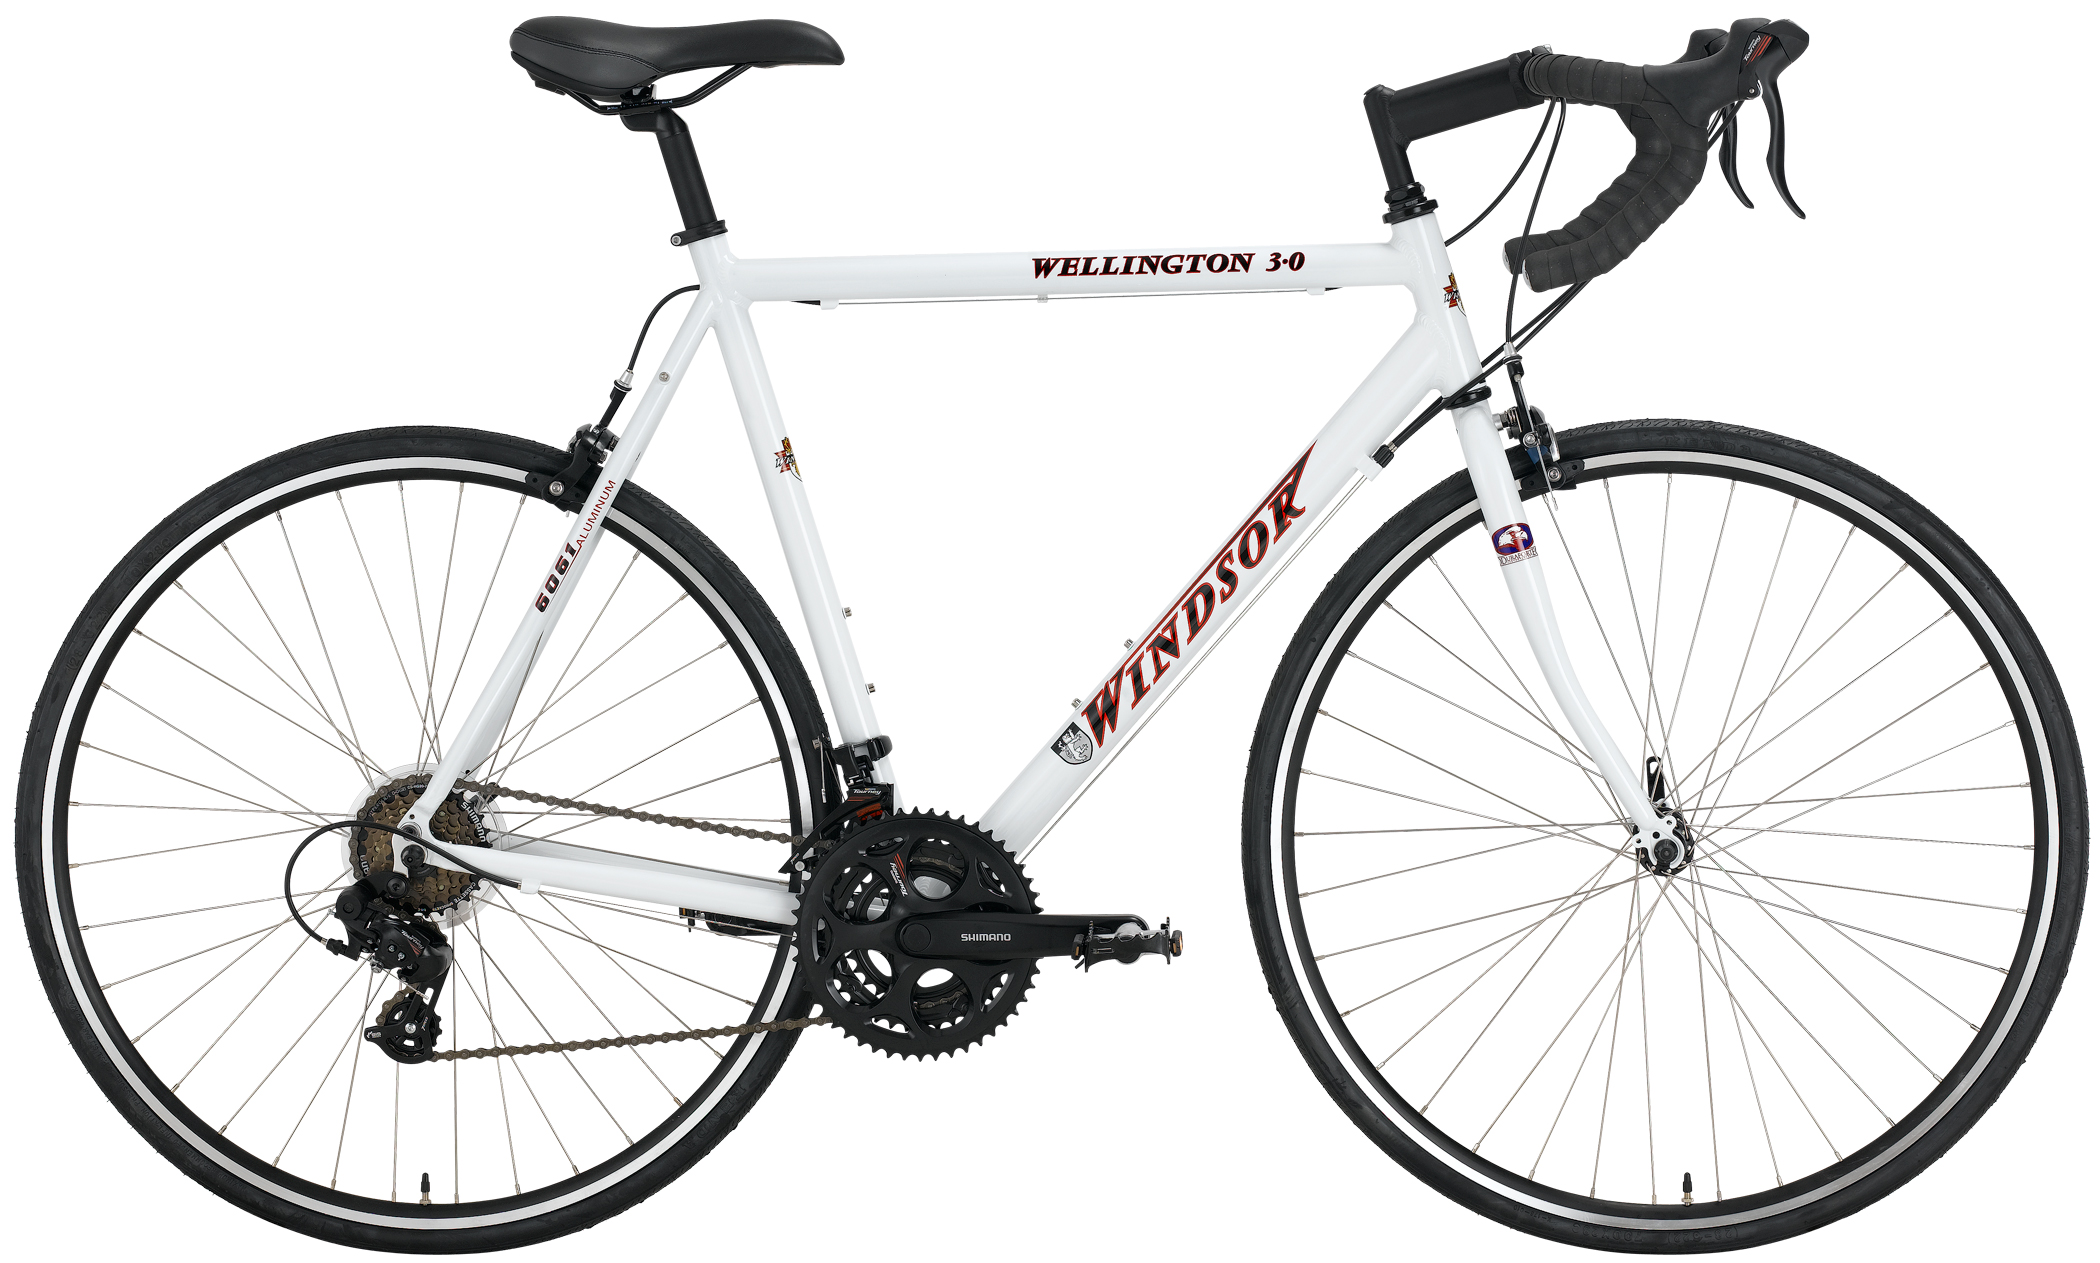 WELLINGTON 3.0   - ALUMINUM ROAD BIKE w/ SHIMANO STI